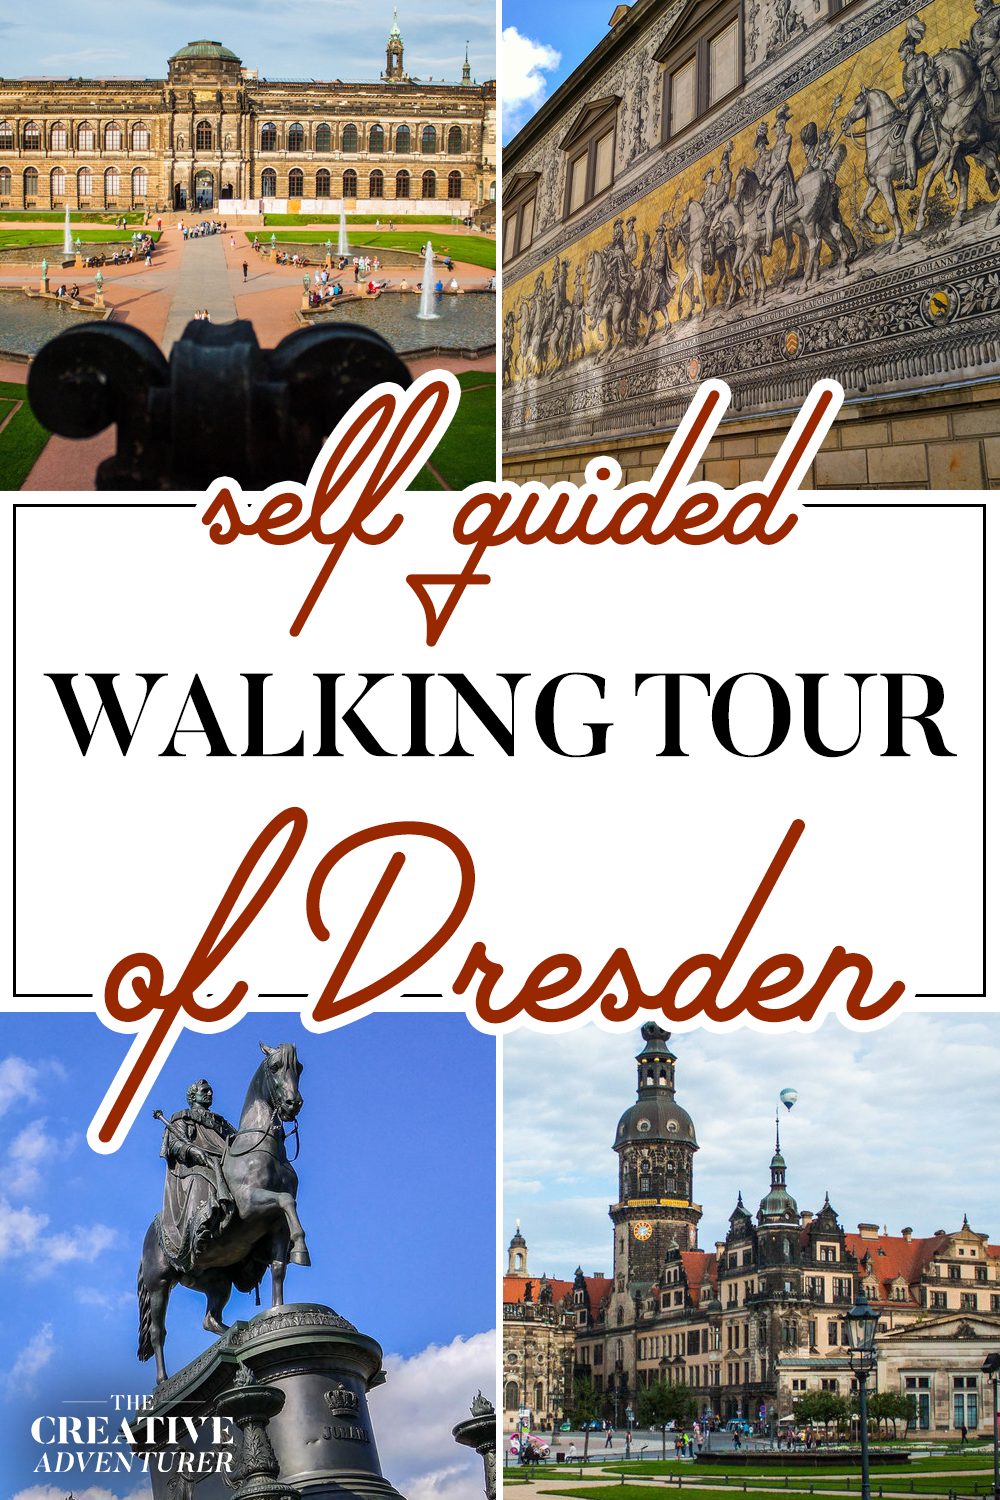 Self Guided Walking Tour of Dresden The Creative Adventurer